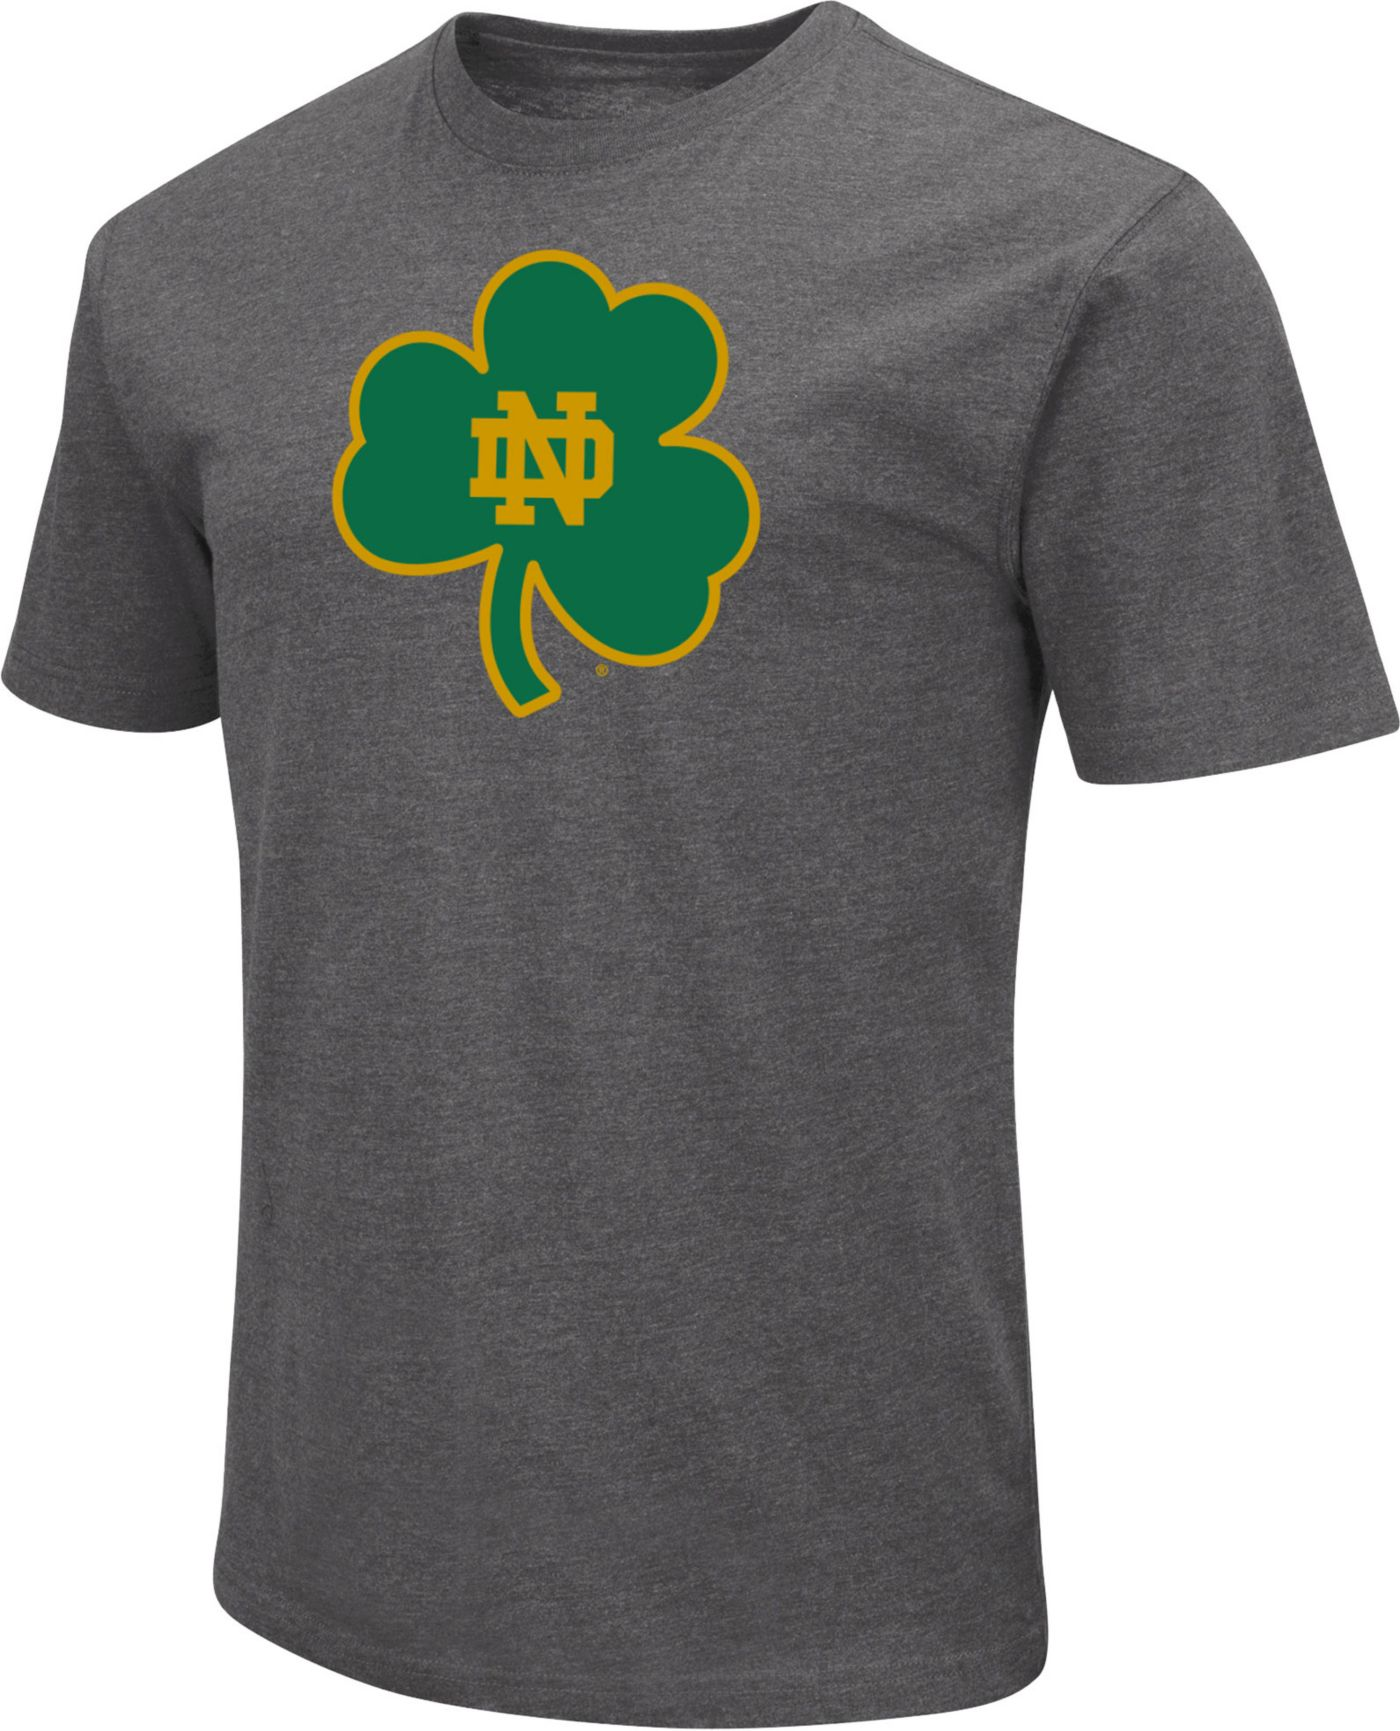 Colosseum Men's Notre Dame Fighting Irish Grey Dual Blend T-Shirt